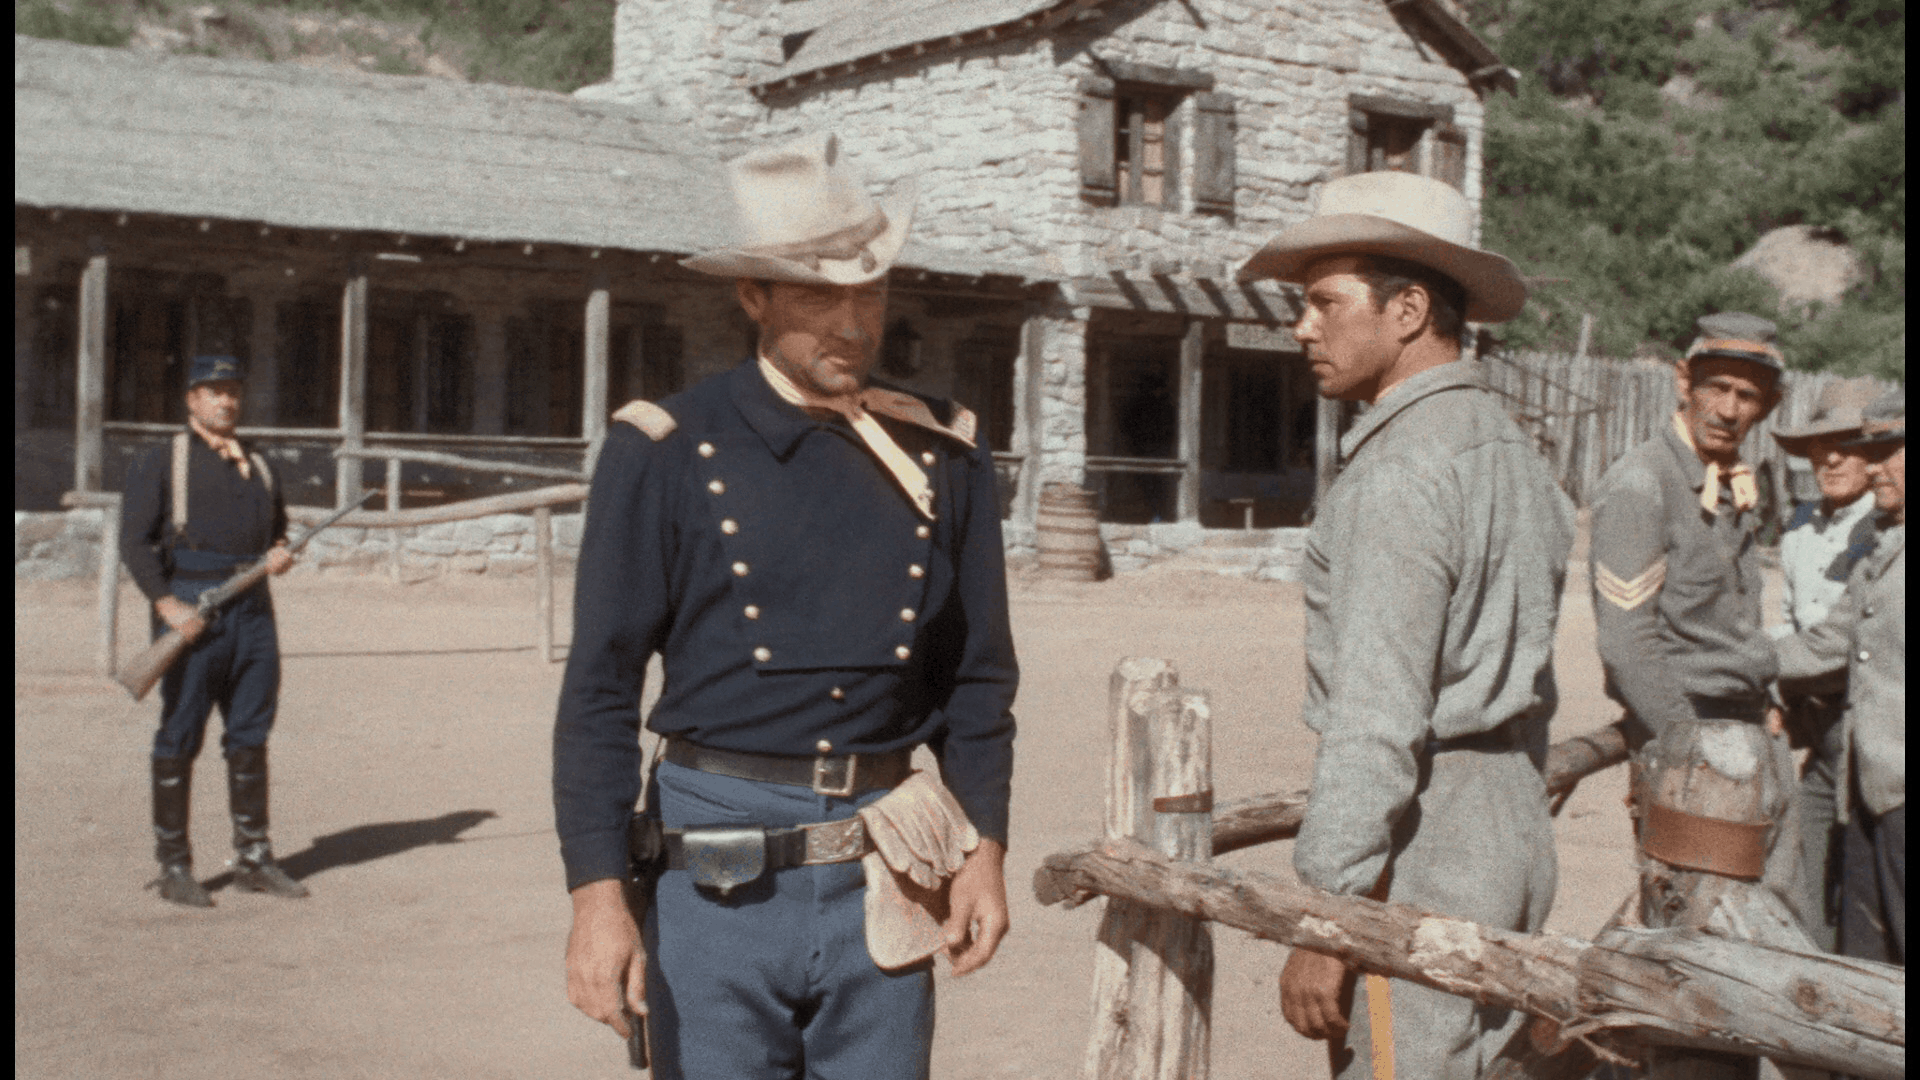 Escape from Fort Bravo (1953) [Warner Archive Blu-ray review] 4